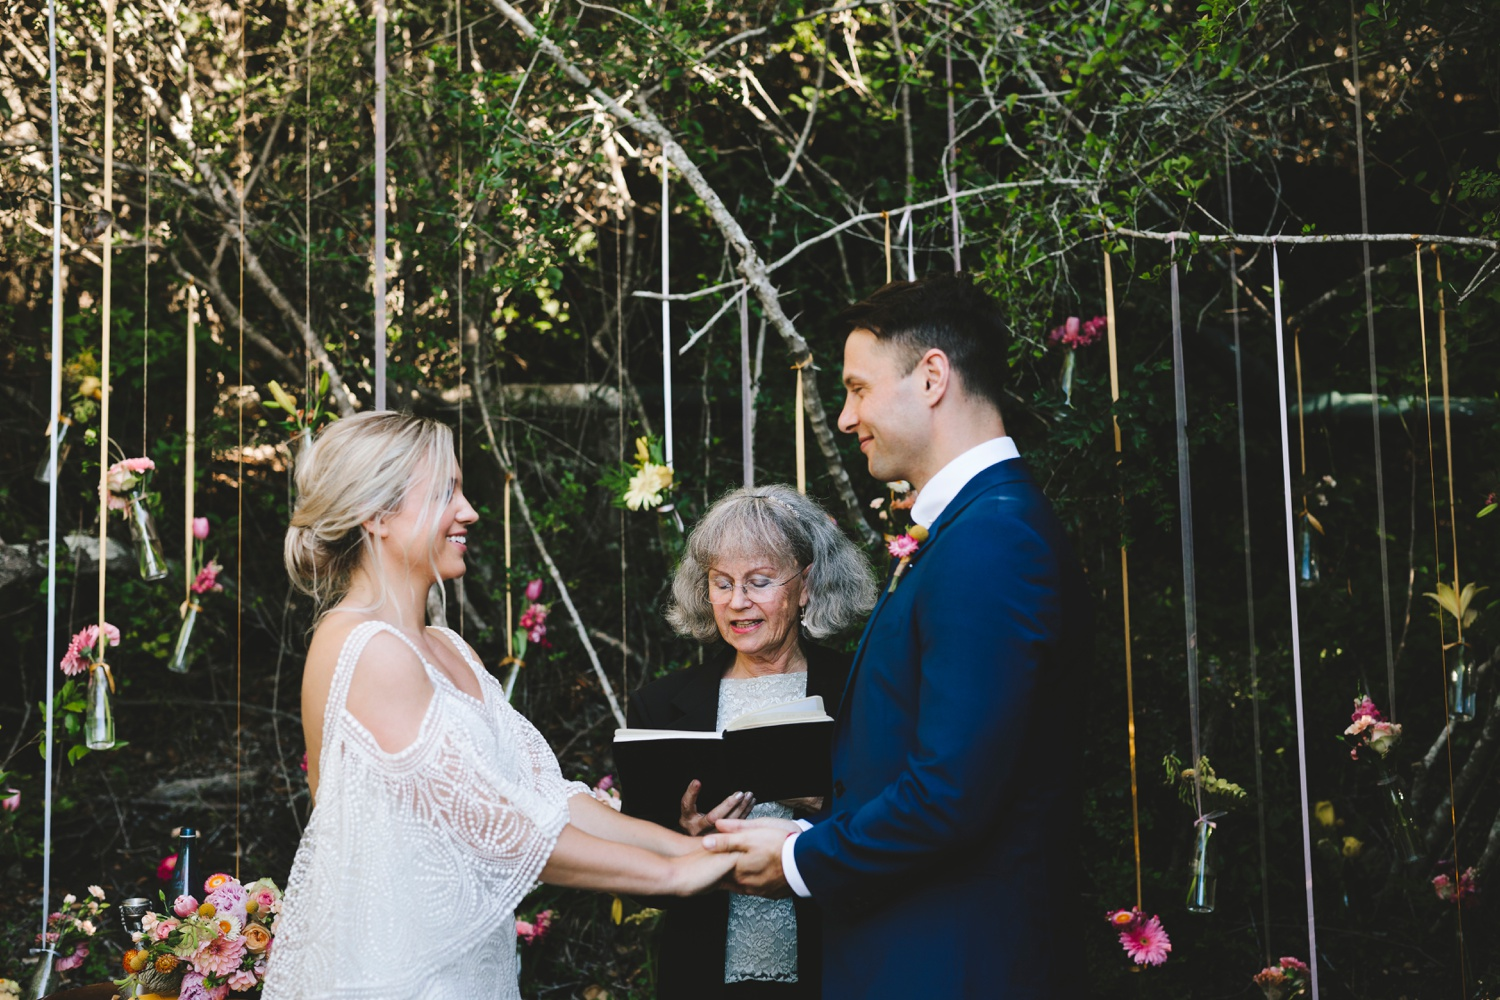 charlie_ray_photography_runaway_romance_elopement_emily_moon_plett_simple_boho_wedding_south_africa_bohemium_0062.jpg